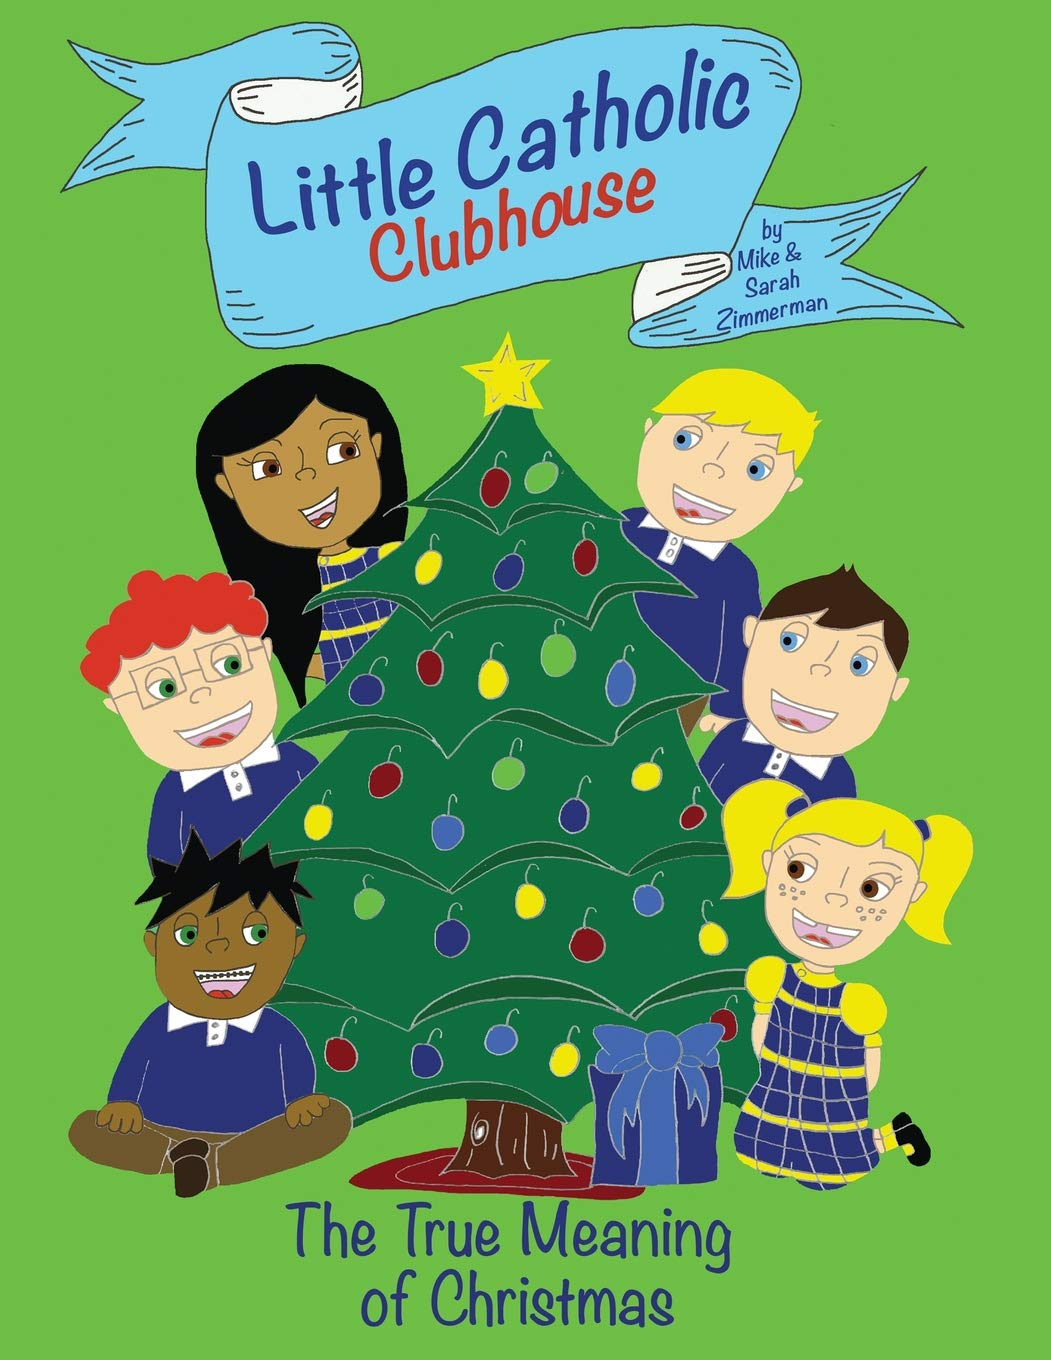 Christmas Meaning.Amazon Com Little Catholic Clubhouse The True Meaning Of